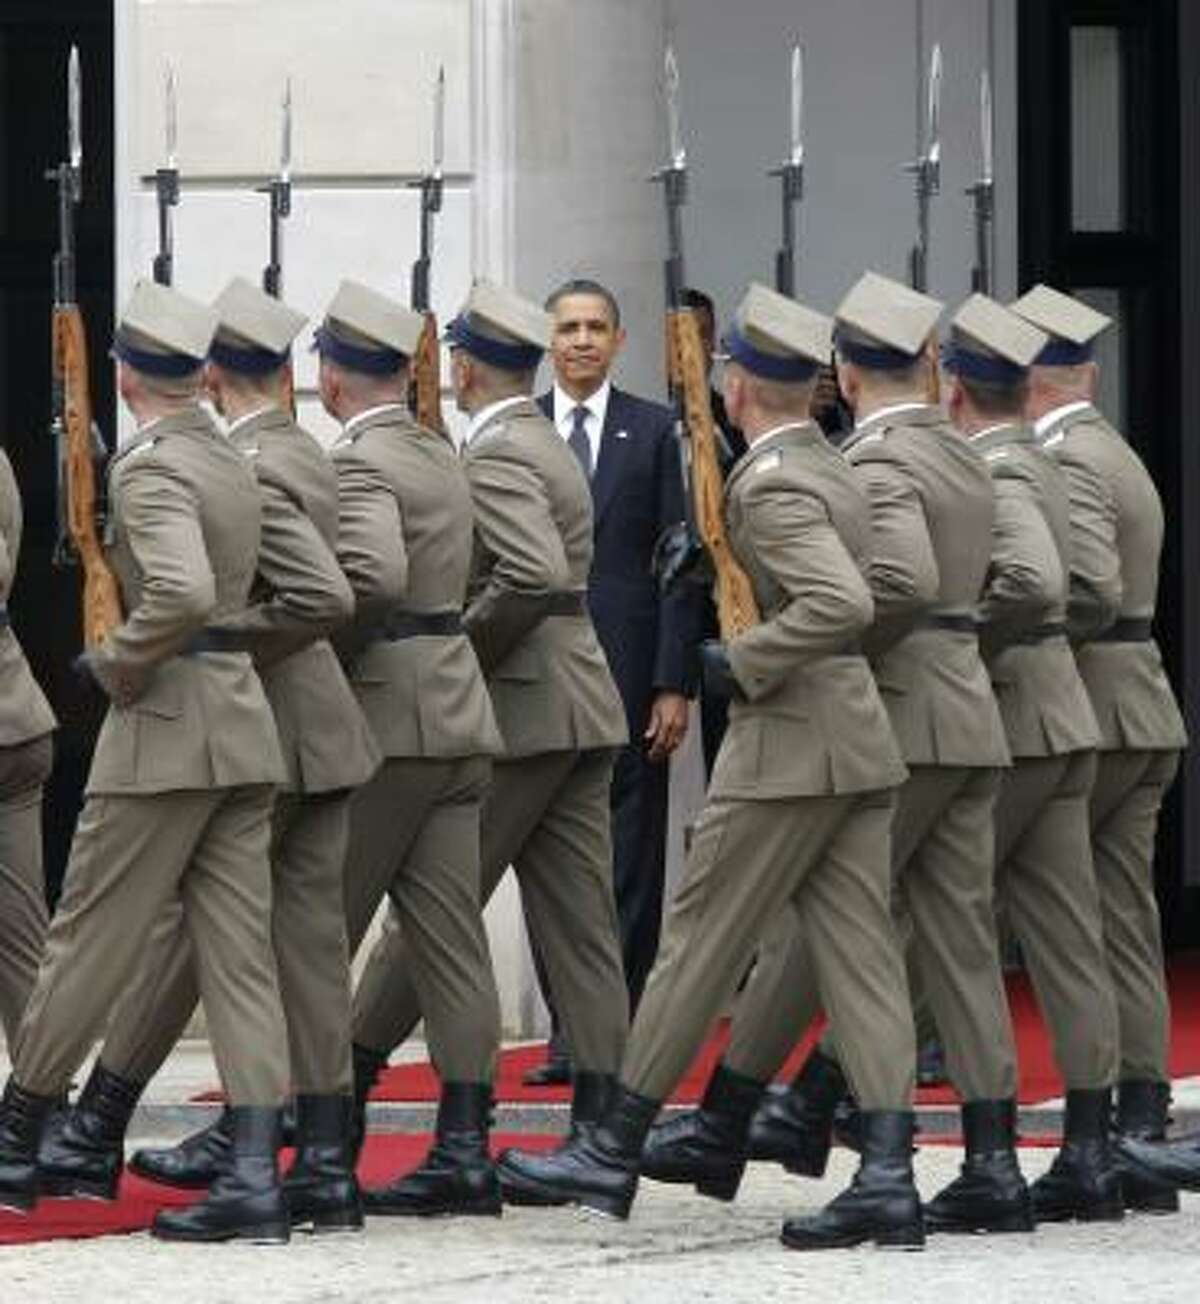 Soldiers march past U.S. President Barack Obama as he takes part in an arrival ceremony at the presidential palace in Warsaw, Poland, Saturday, May 28, 2011. President Barack Obama is meeting with Poland's president as he begins the last day of his European tour. Polish President Bronislaw Komorowski greeted Obama at the presidential palace in a formal ceremony. The two leaders are meeting to discuss democracy and security issues.